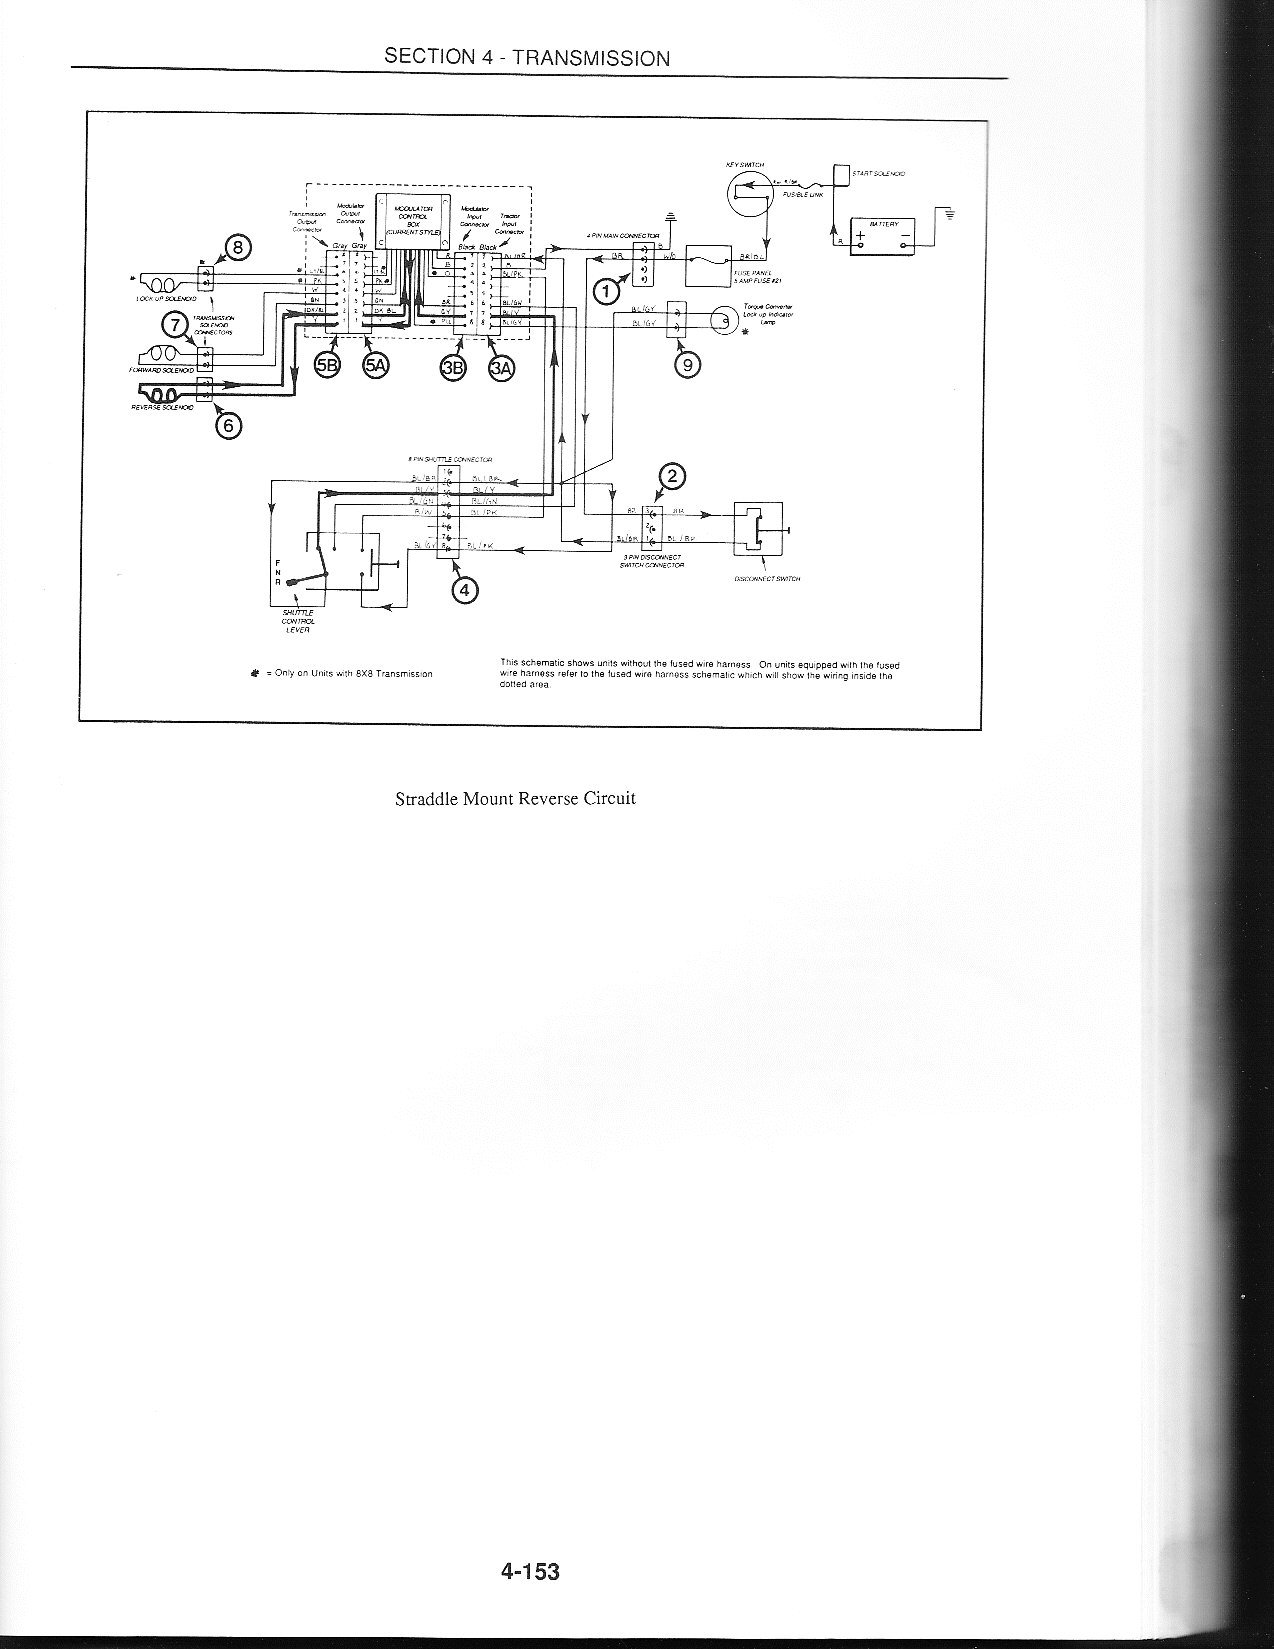 Ford 445d Tractor Wiring Harness Diagram Bots Backhoe I Have A 445c Loader With 8 X8 Lectronic Shuttle Shift